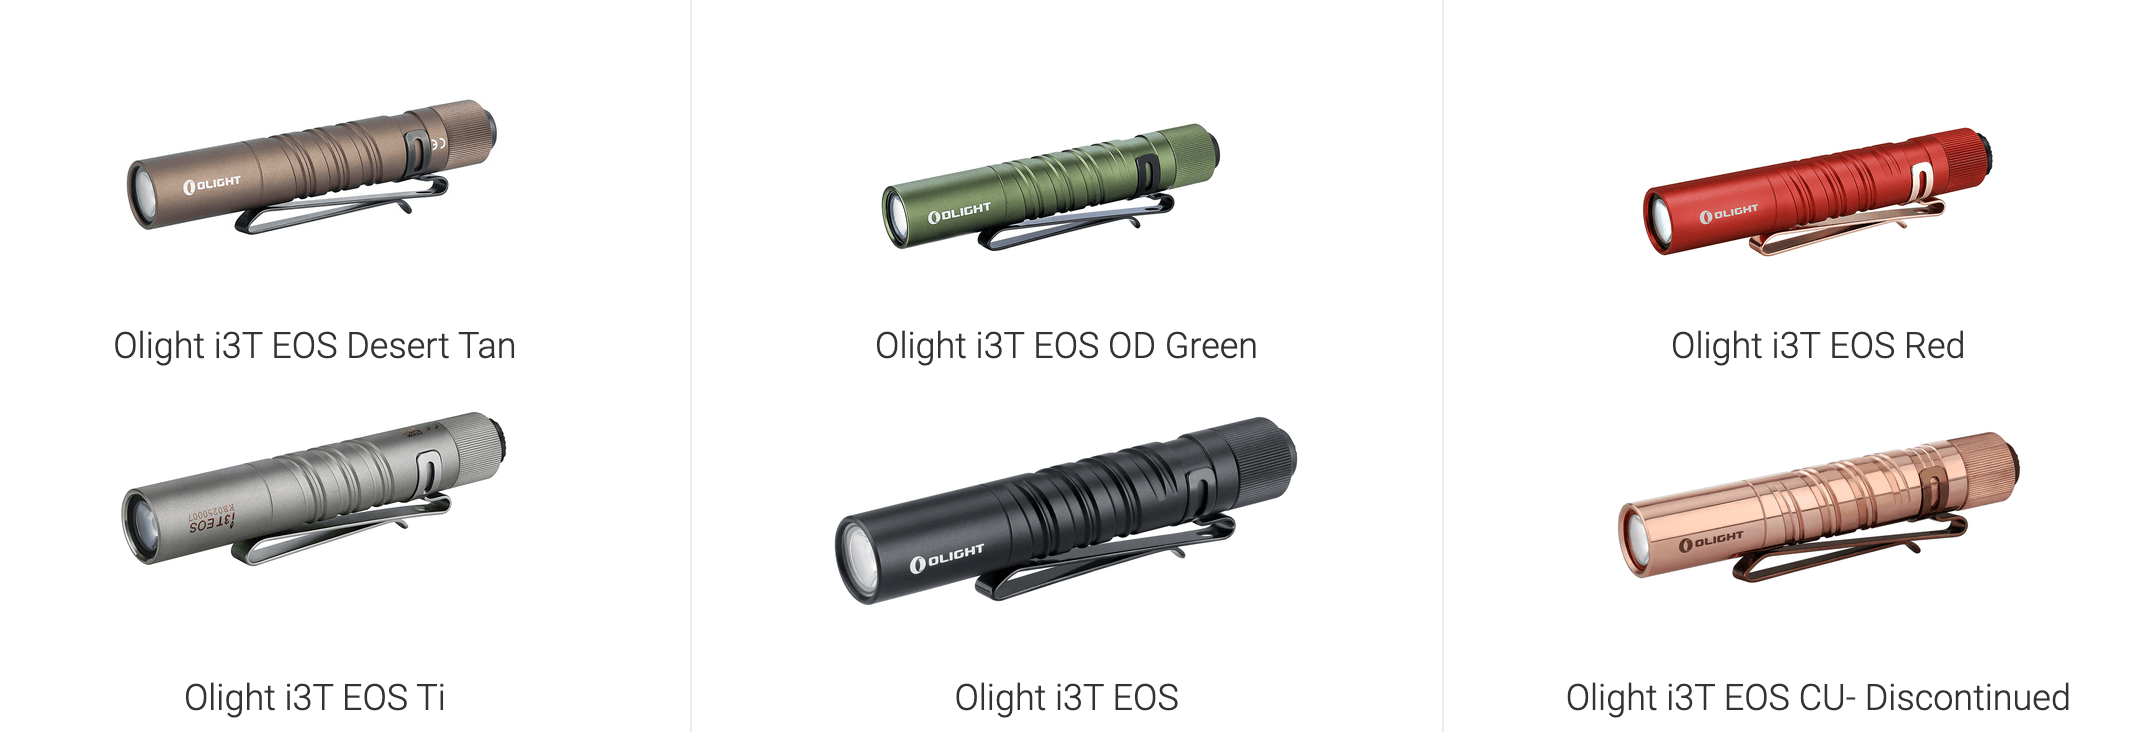 olight i3t eos titanium aaa flashlight versions